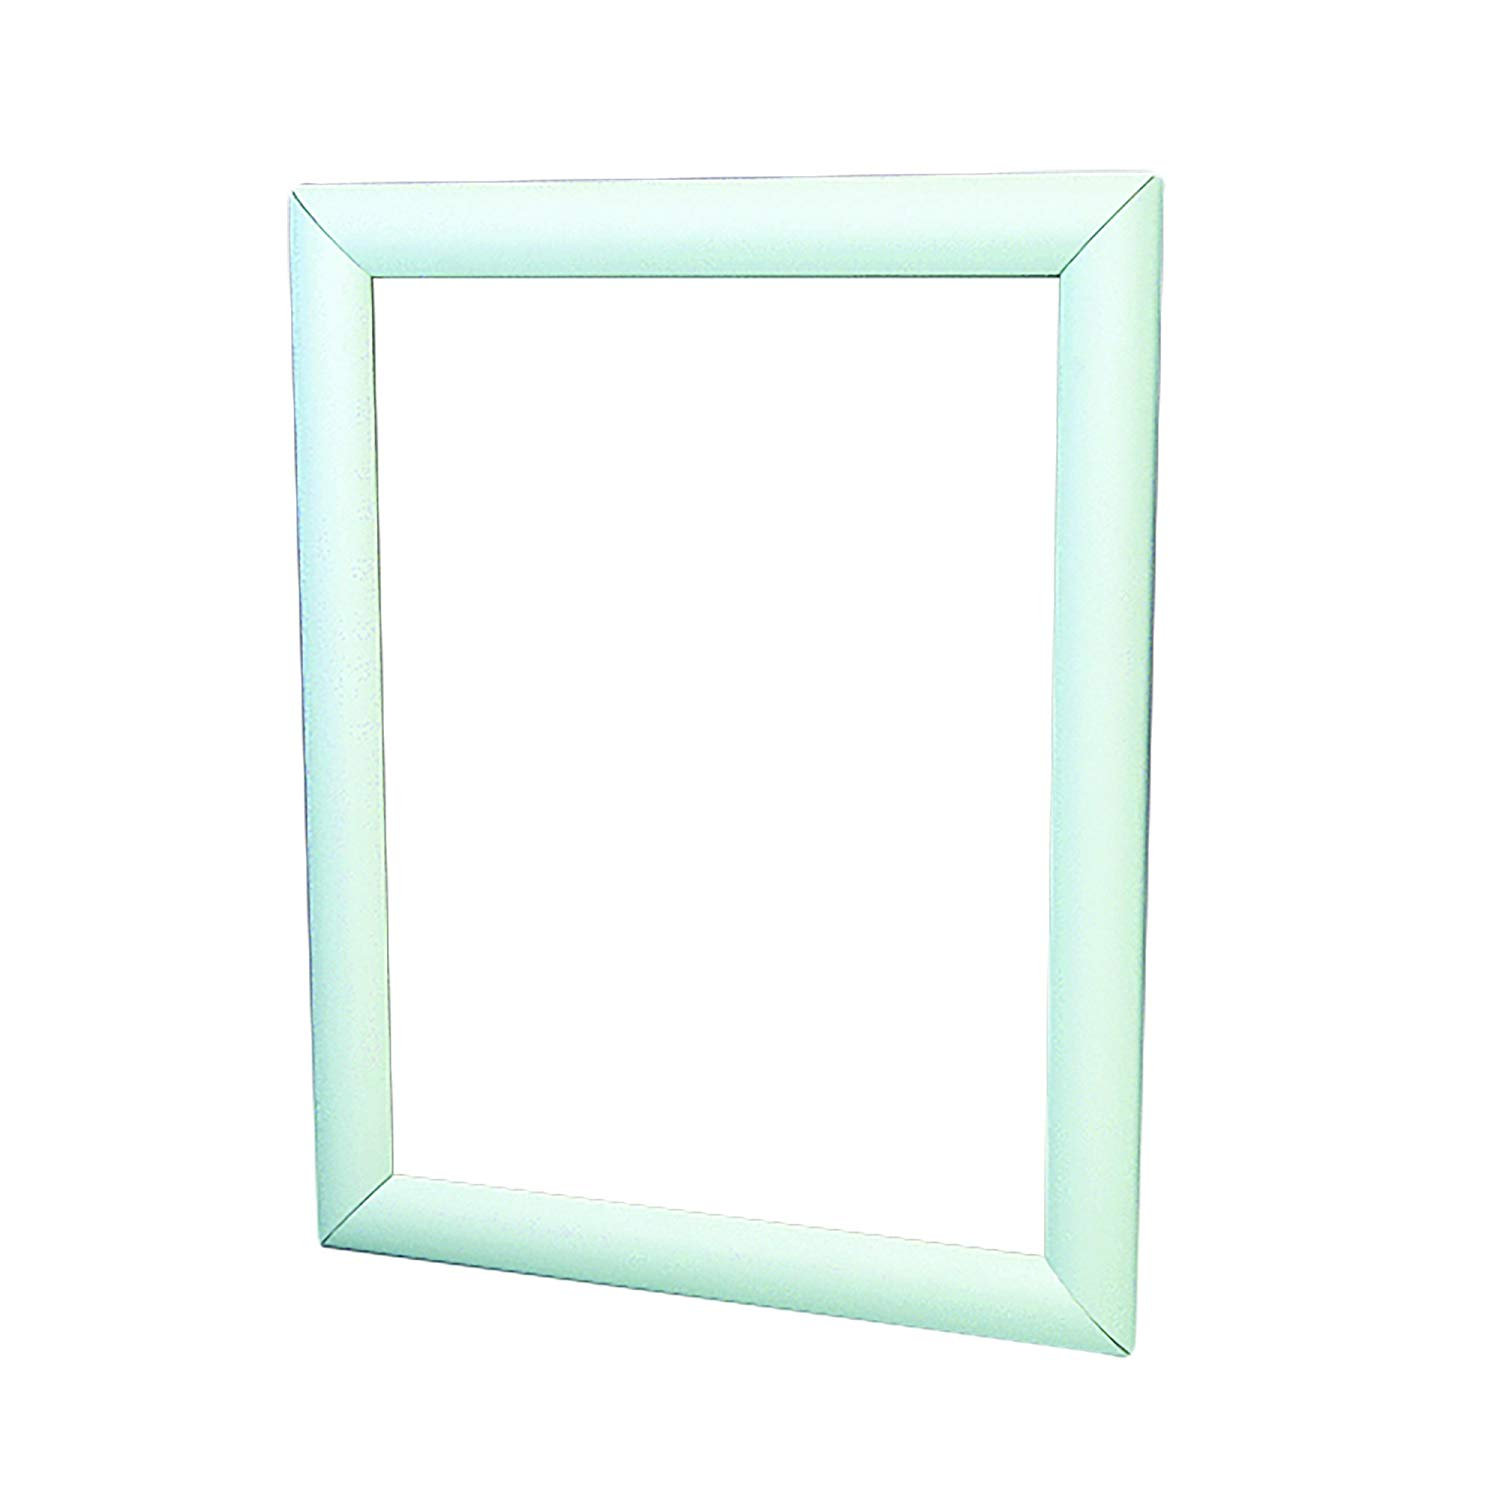 """Deflecto LED Wall Mount Display Frame, Business Sign, Backlit Display, Single-Sided, 11"""" x 17"""", Silver (690007)"""